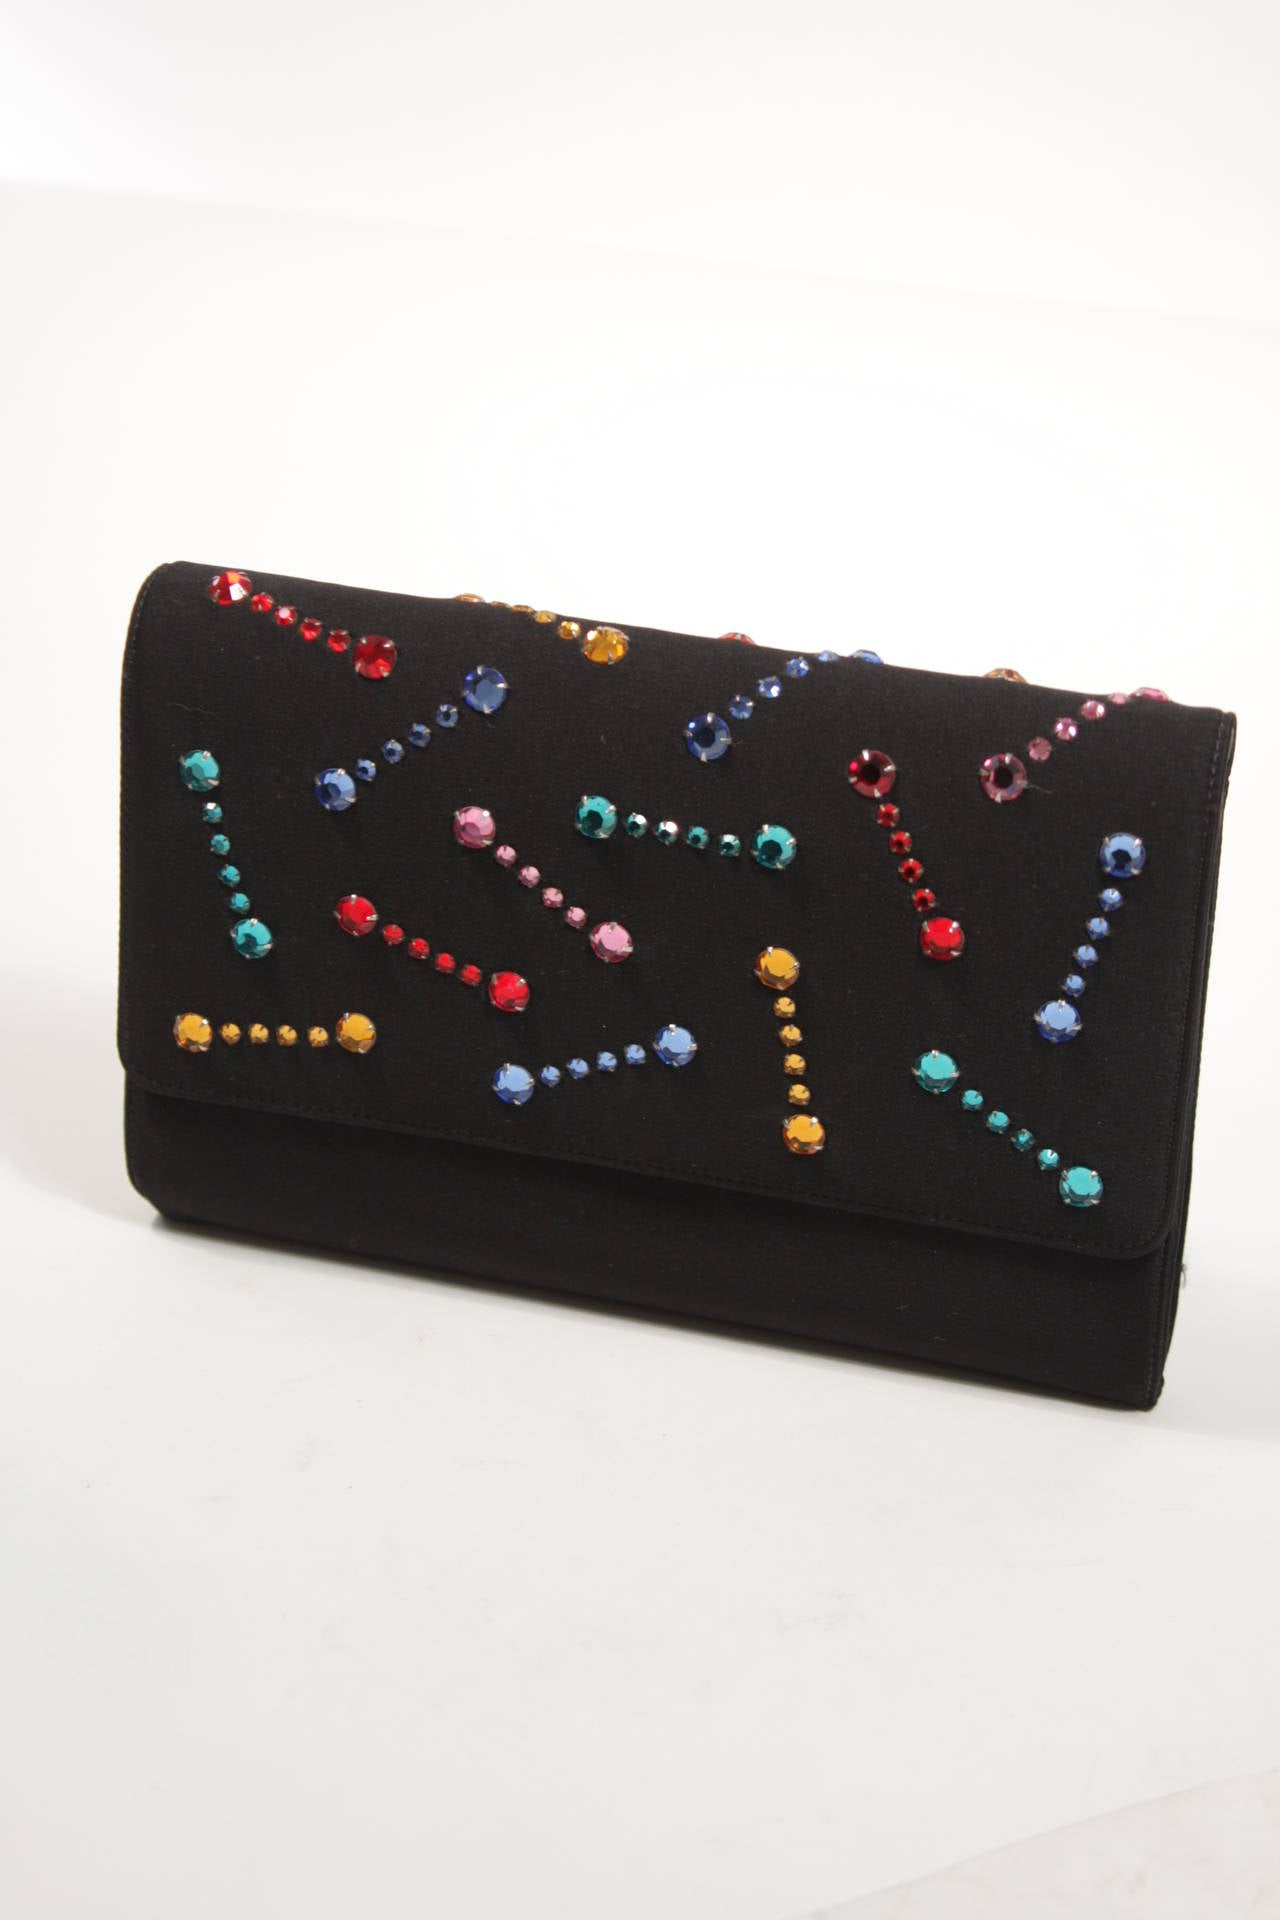 Givenchy Paris Black Clutch with Rhinestones 5